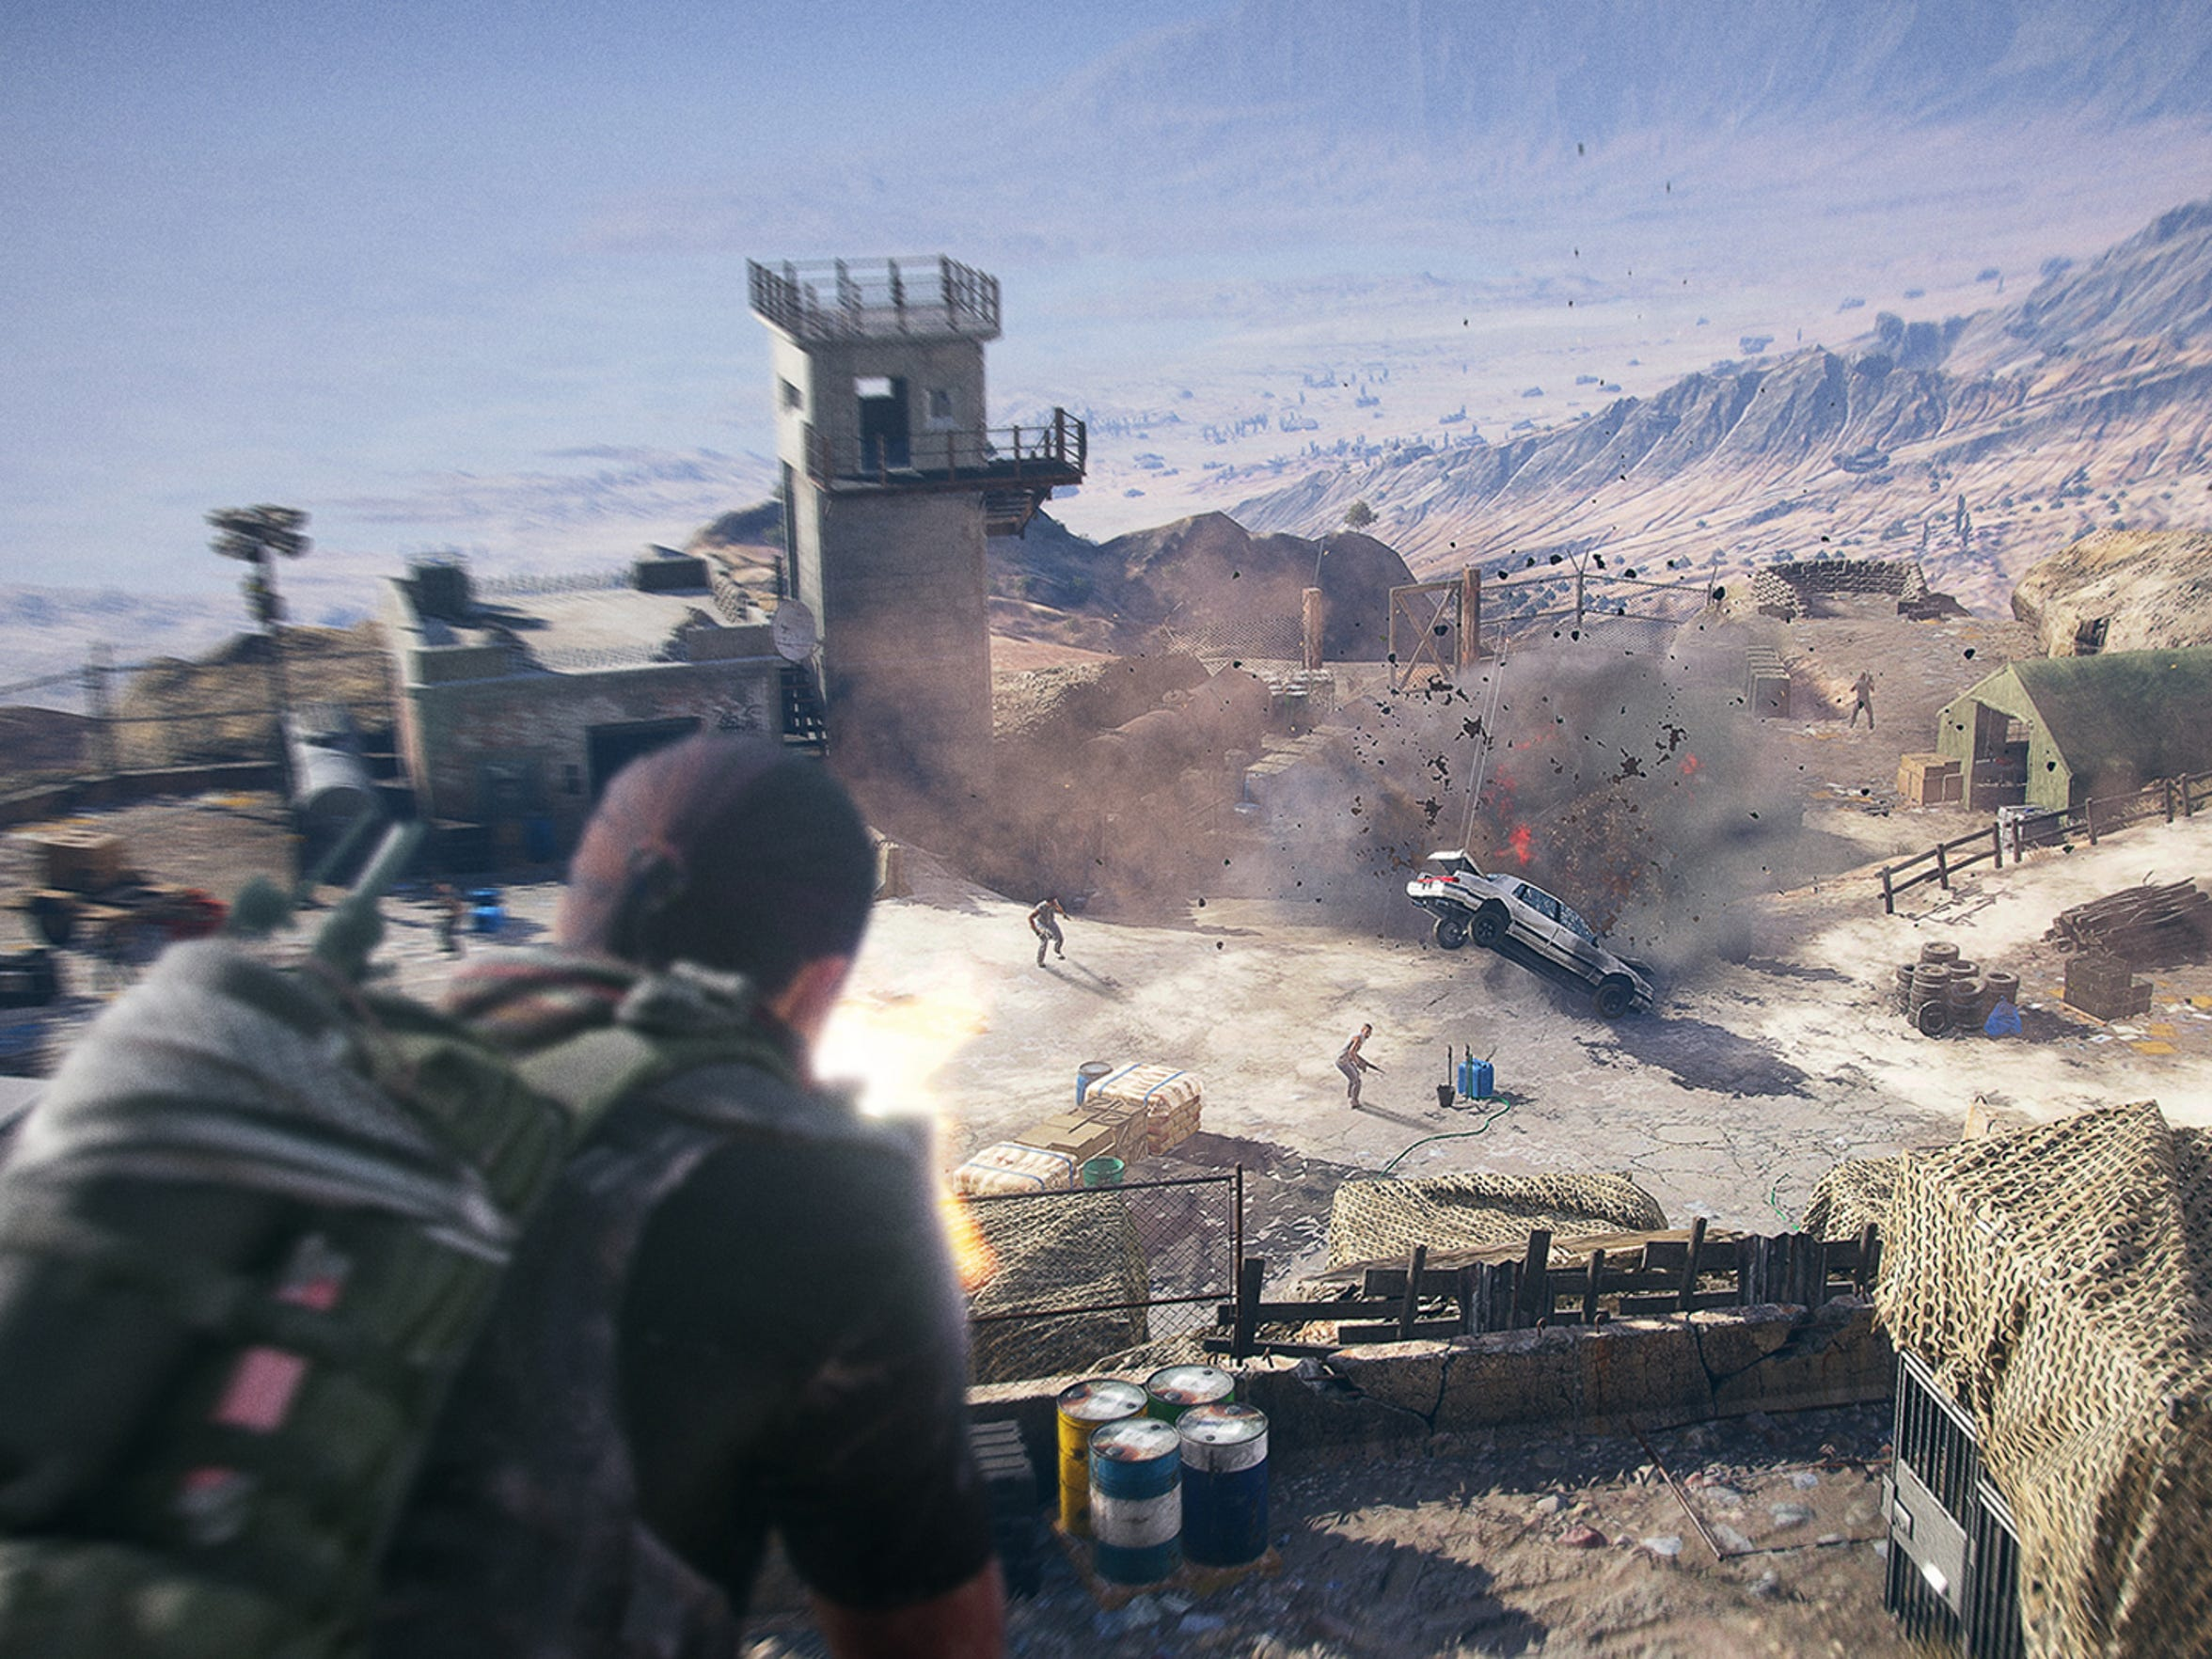 Lay waste on the Santa Blanca cartel's outposts in